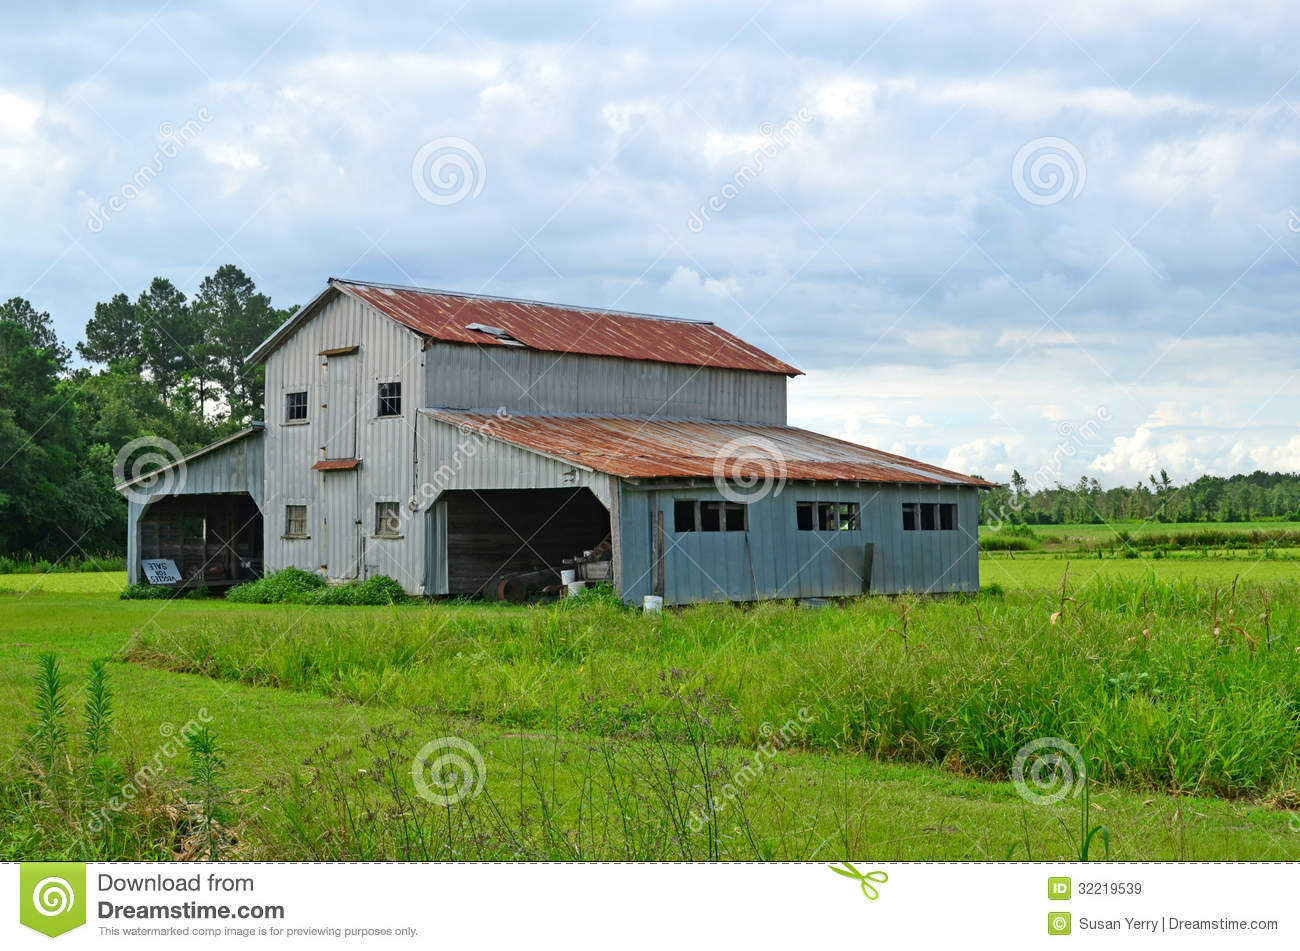 Old barns design architecture joy studio design gallery for Farm shed ideas